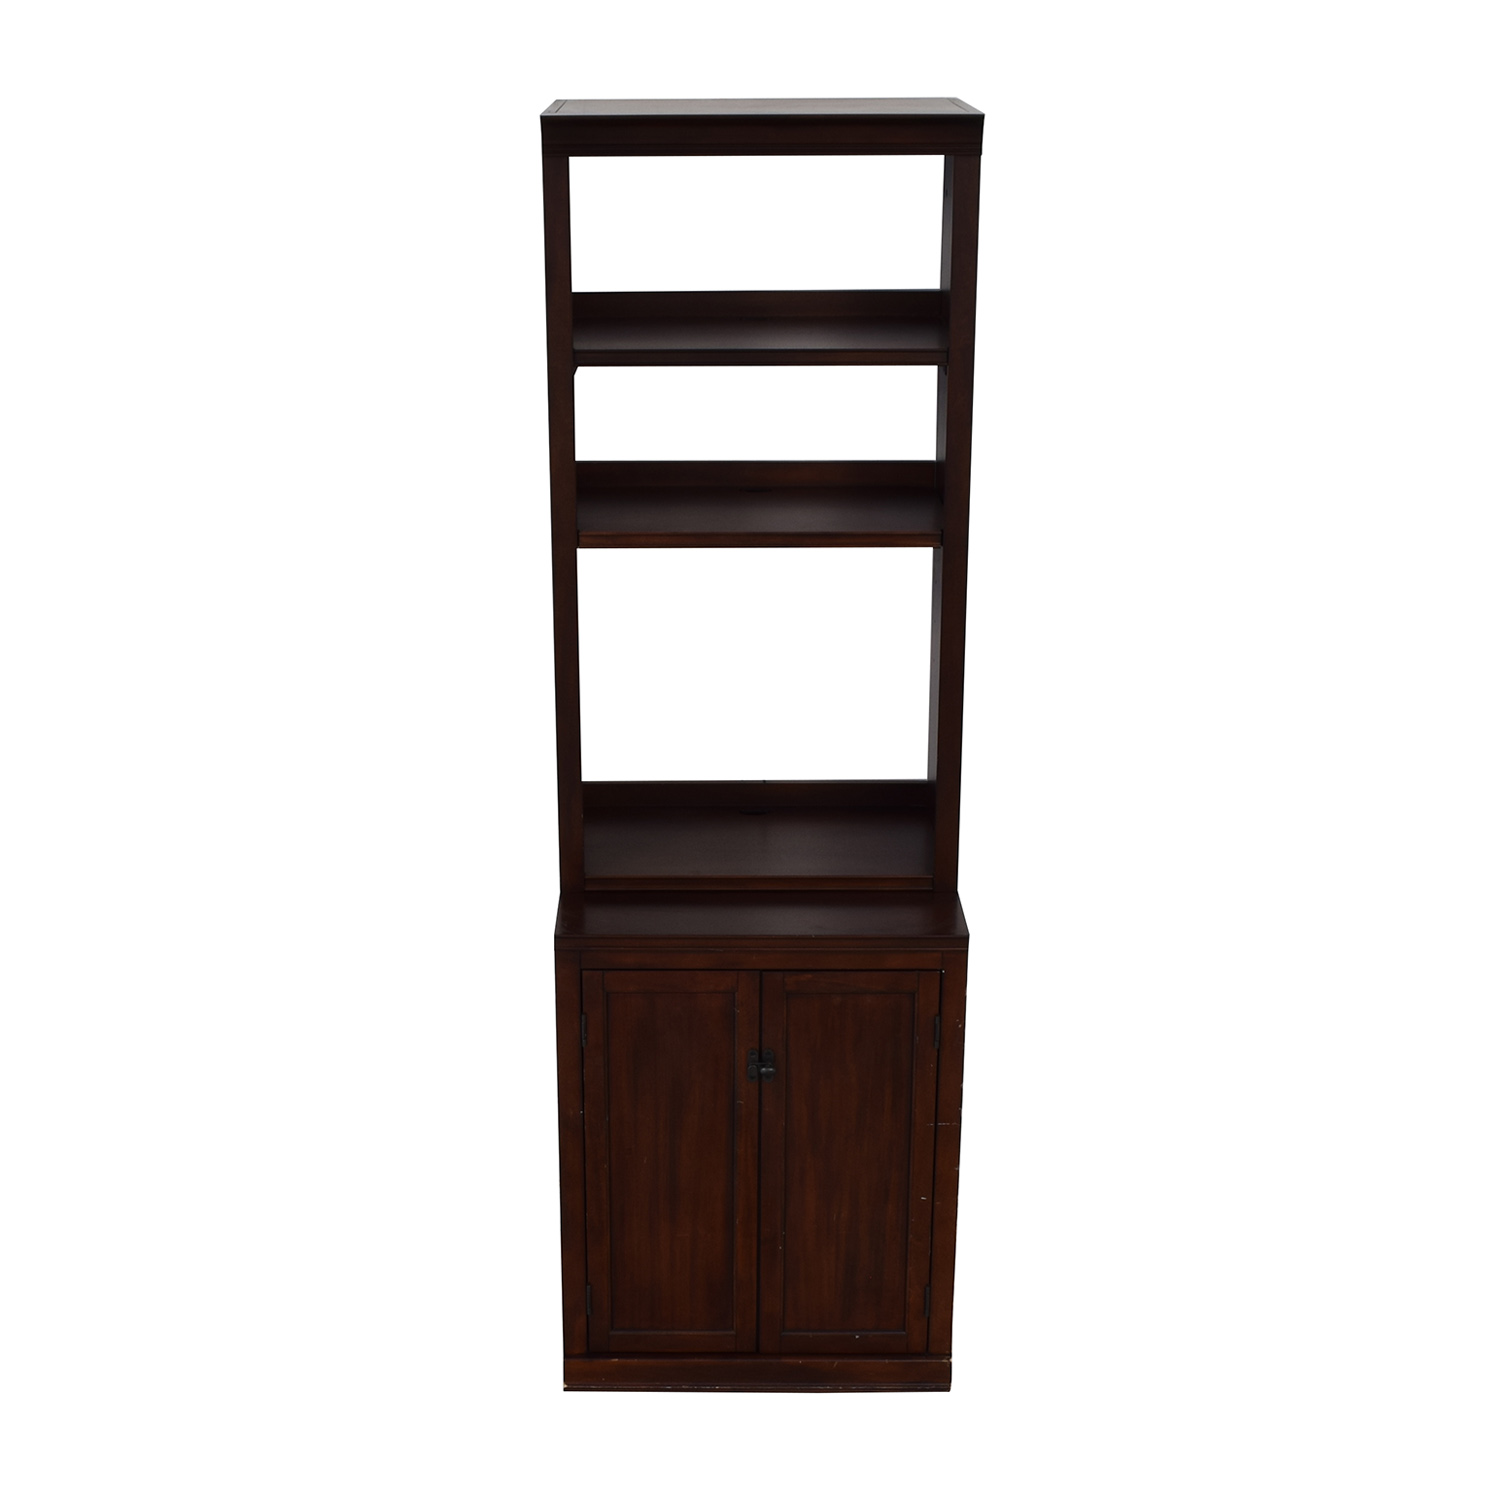 shop Pottery Barn Pottery Barn Bookcase with Storage Cabinet online